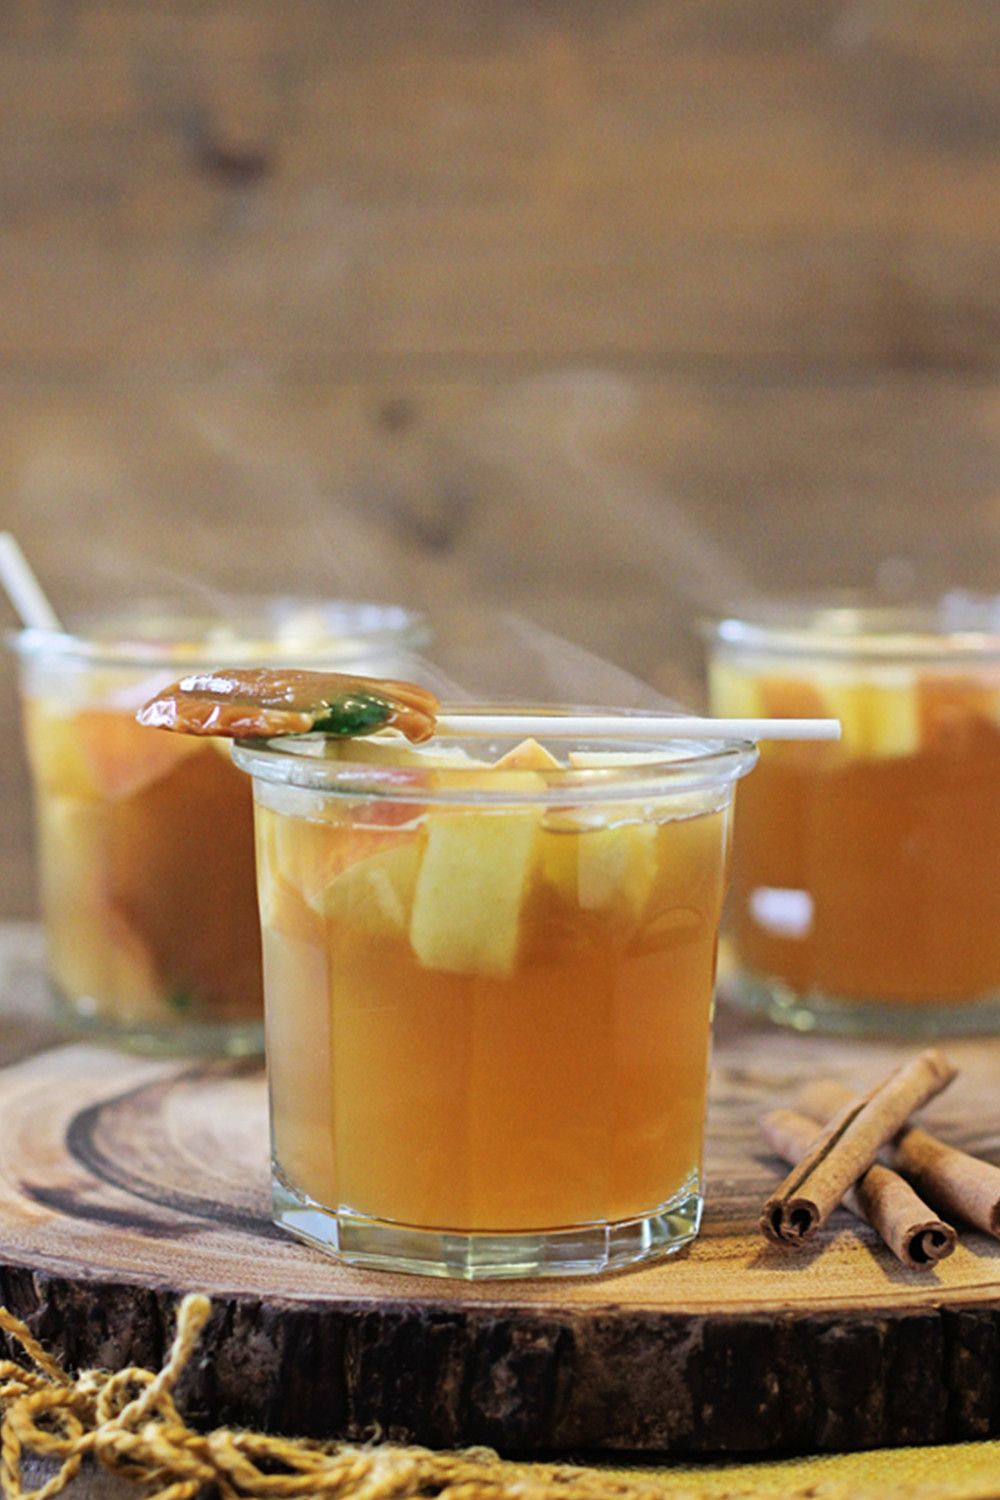 """<p><strong>Ingredients:</strong></p><p>1 quart + 1 1/2 cups apple cider</p><p>1 1/2 cups Apple liqueur</p><p>1 cup spiced rum</p><p>1/2 cup caramel-flavored syrup </p><p>3 apples, chopped</p><p>4 cinnamon sticks </p><p>Caramel apple suckers (optional)</p><p><strong>To make:</strong></p><p>1.Place everything in the slow cooker (except the suckers). Cook on the low setting for 1-2 hours. Serve warm.</p><p><em>Courtesy </em><a href=""""http://busy-mommy.com/2014/10/hot-caramel-apple-cocktail.html """" target=""""_blank""""><em>busy-mommy.com</em></a></p>"""